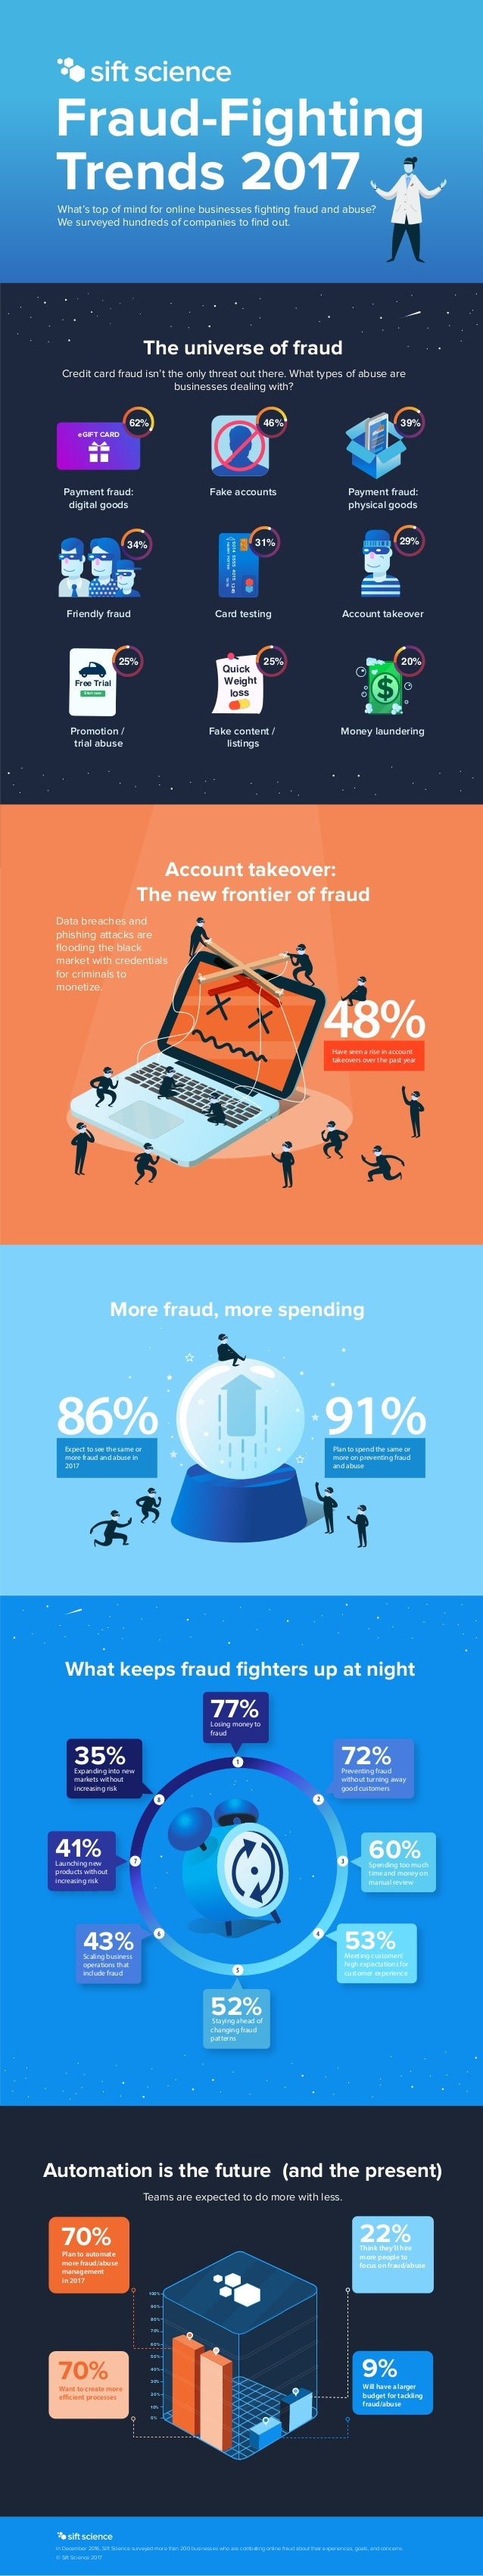 The universe of fraud More fraud, more spending Credit card fraud isn't the only threat out there. What types of abuse are...